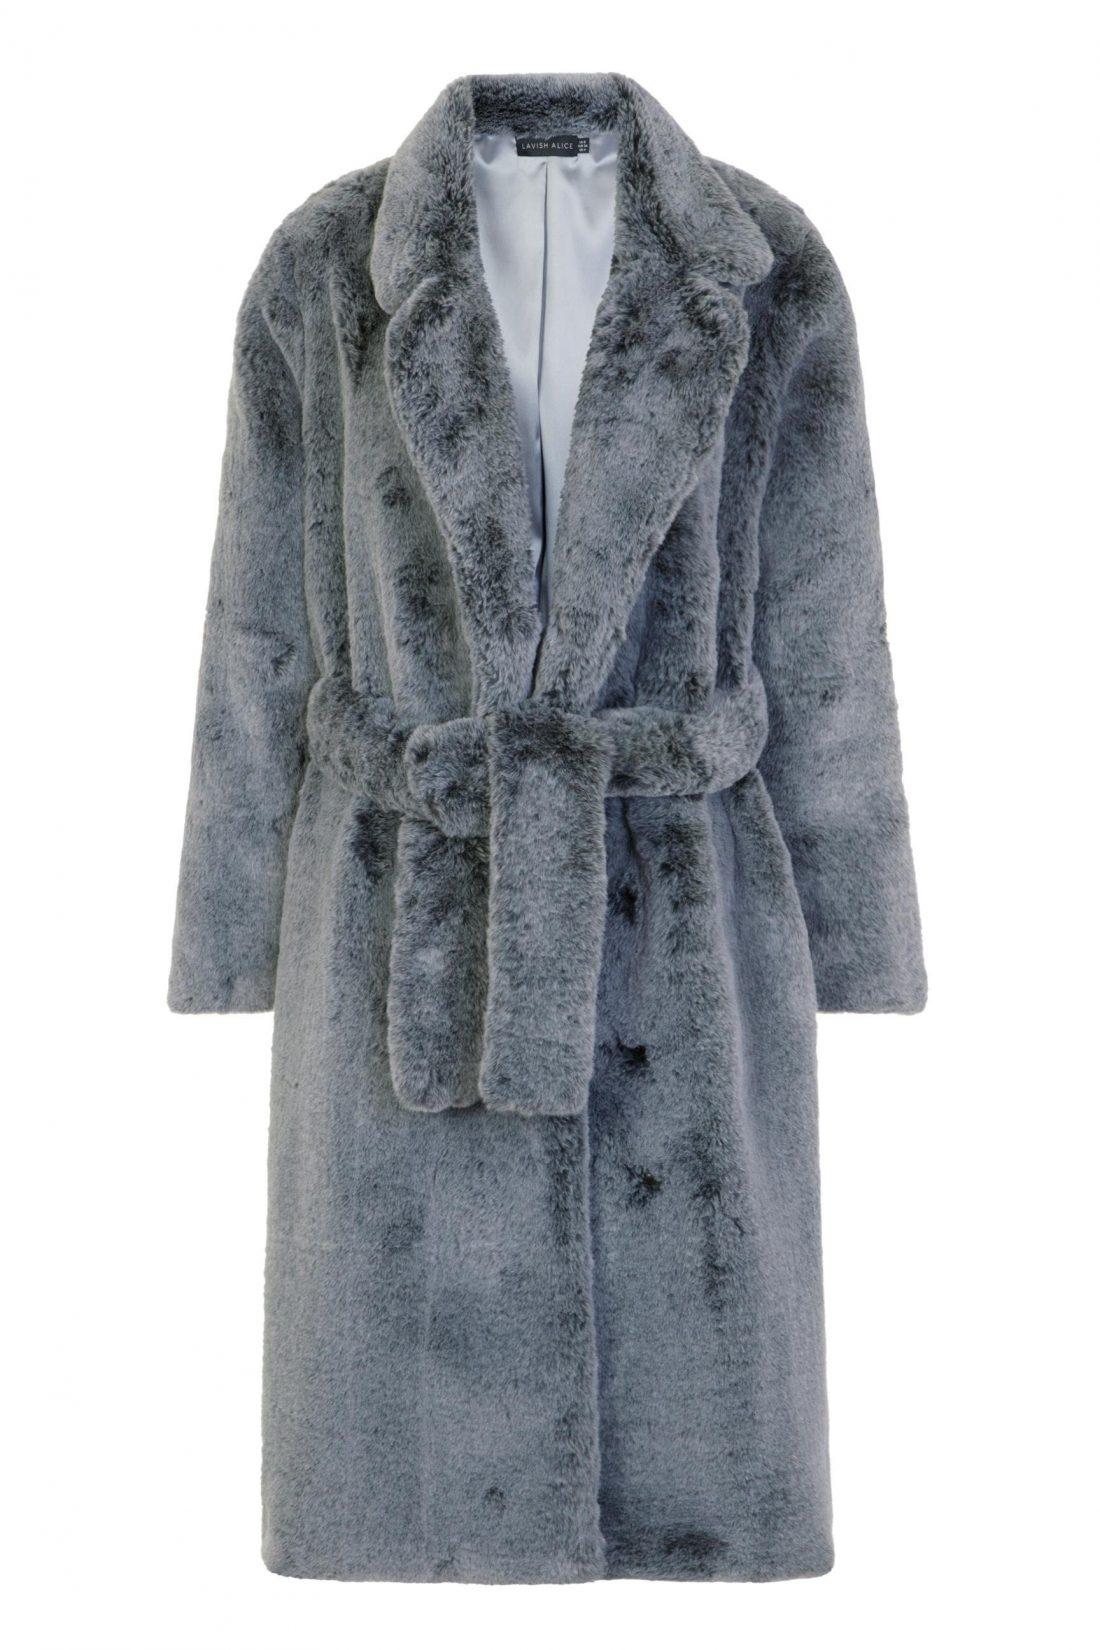 fashion,faux fur coats,winter coat